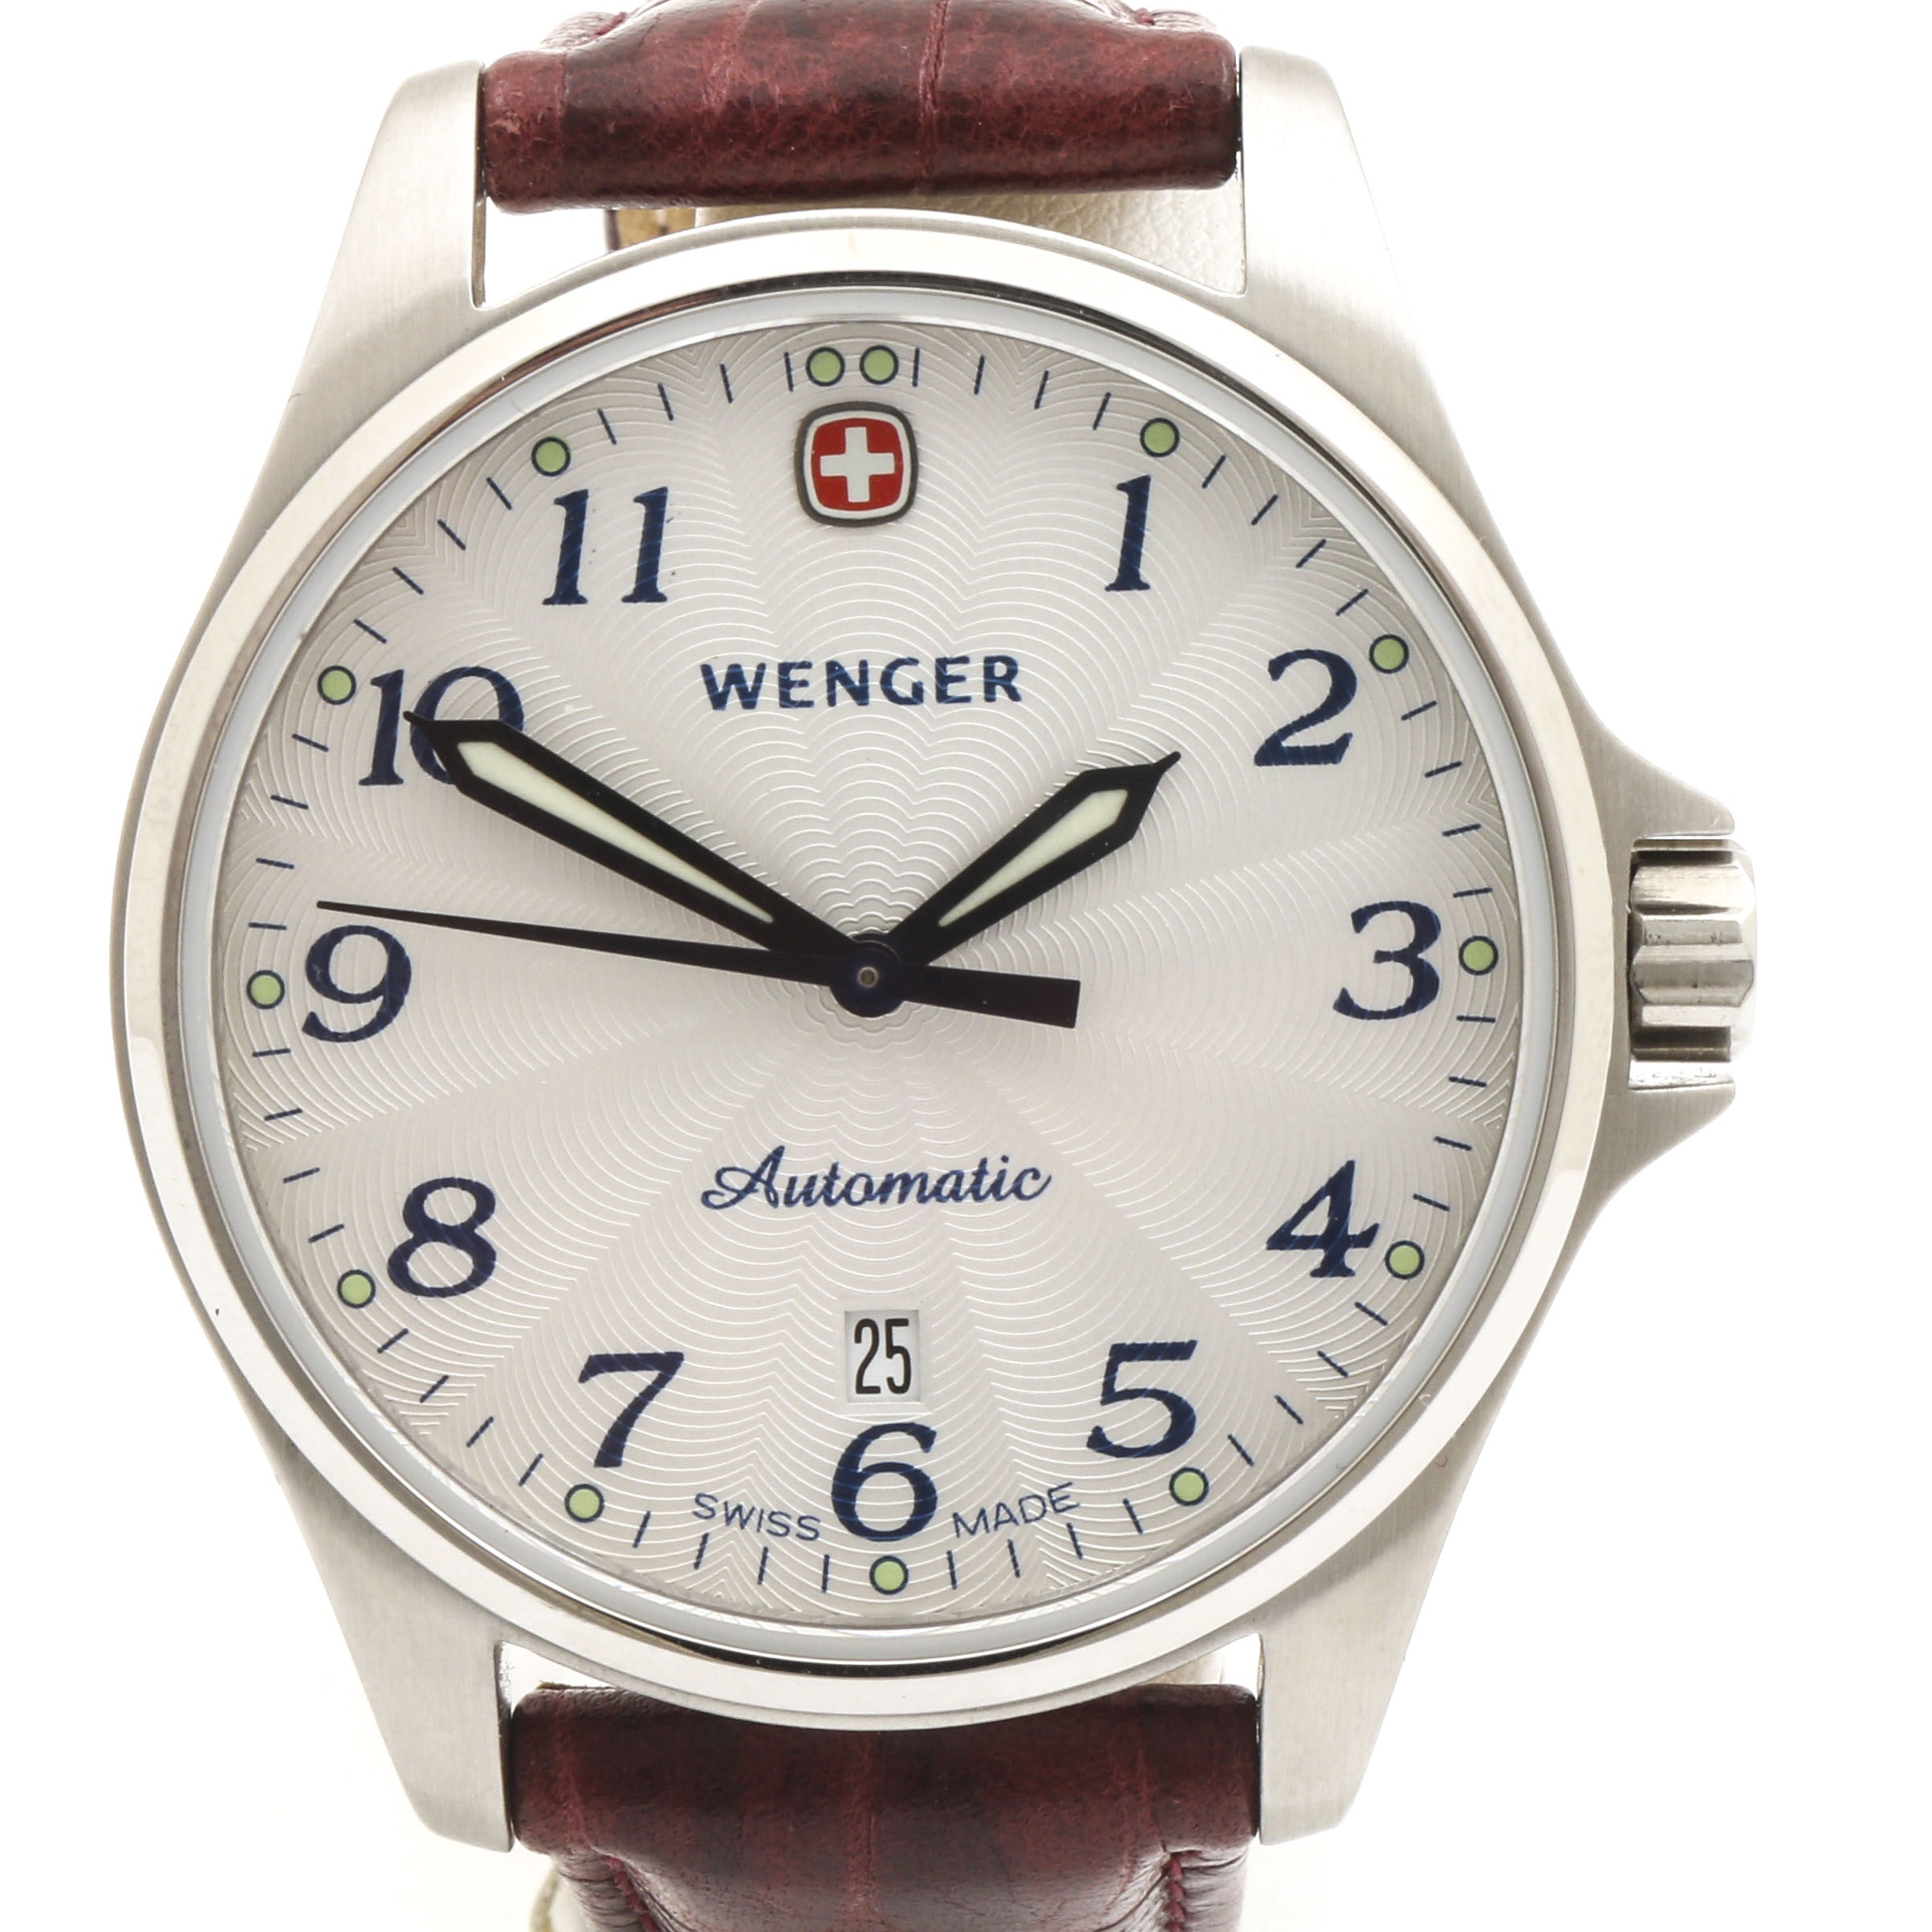 Wenger Automatic Stainless Steel Wristwatch